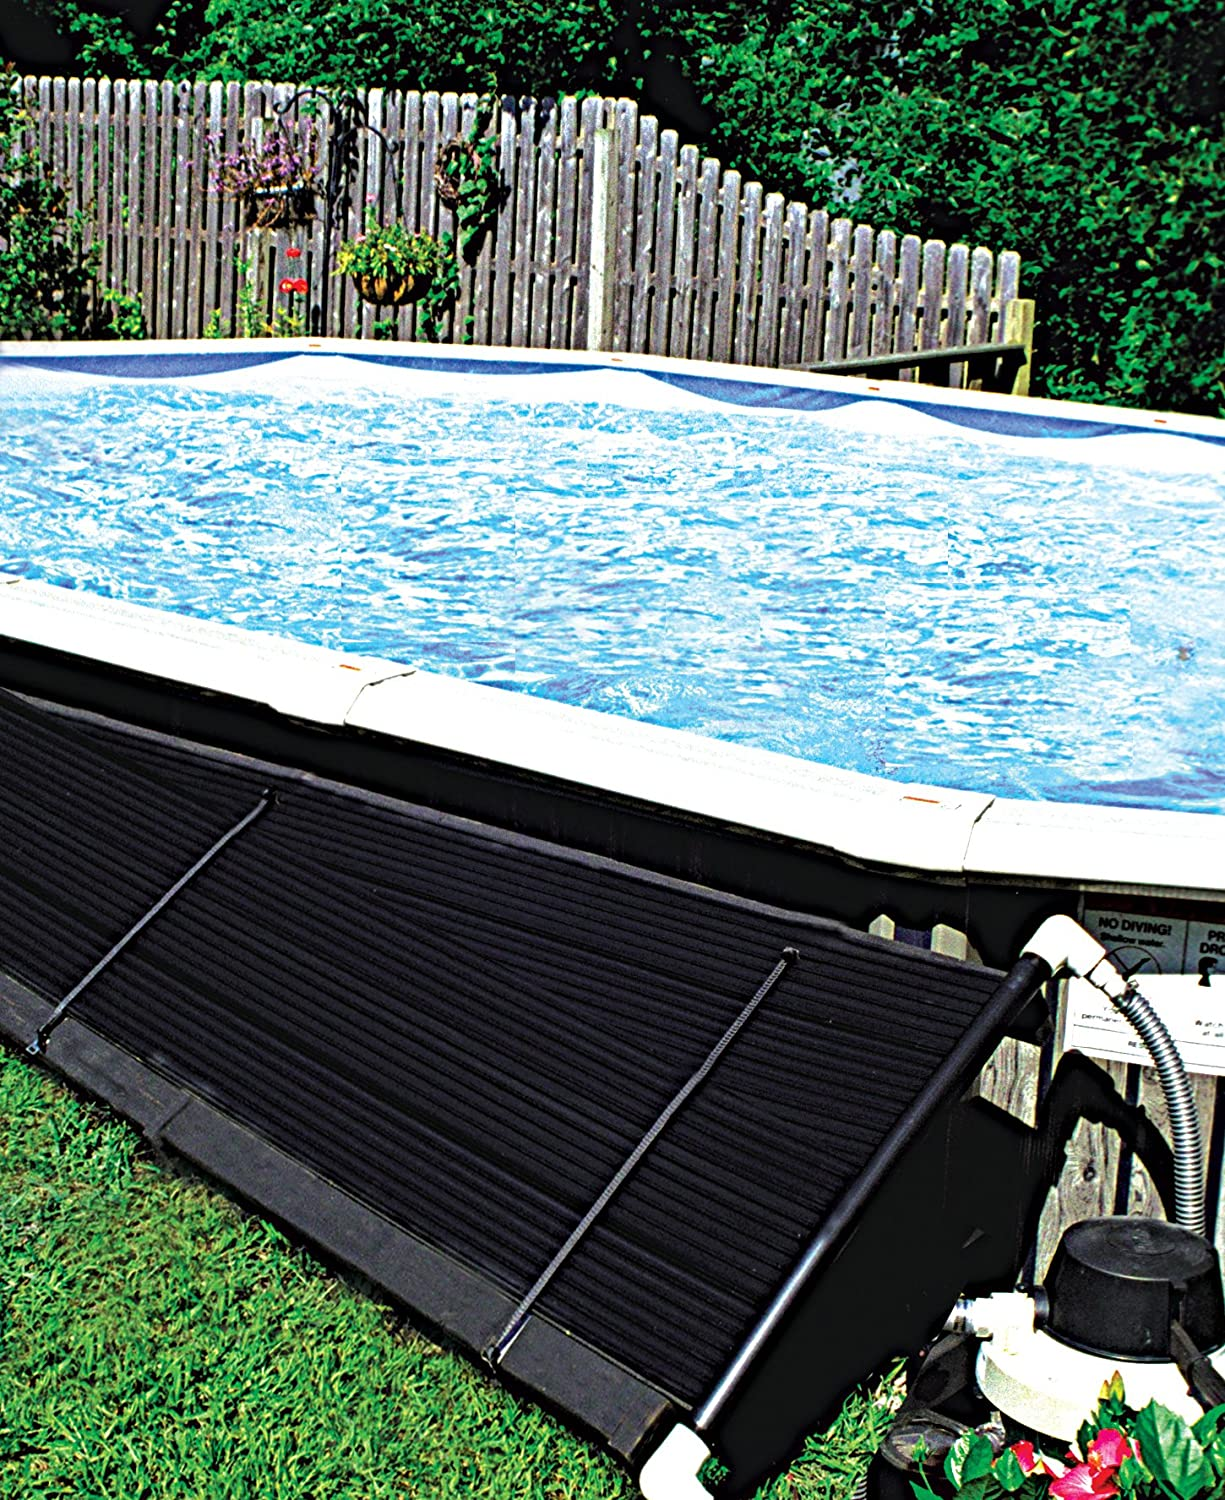 SunHeater S120U Universal Solar Pool Heater 2 by 20-Feet